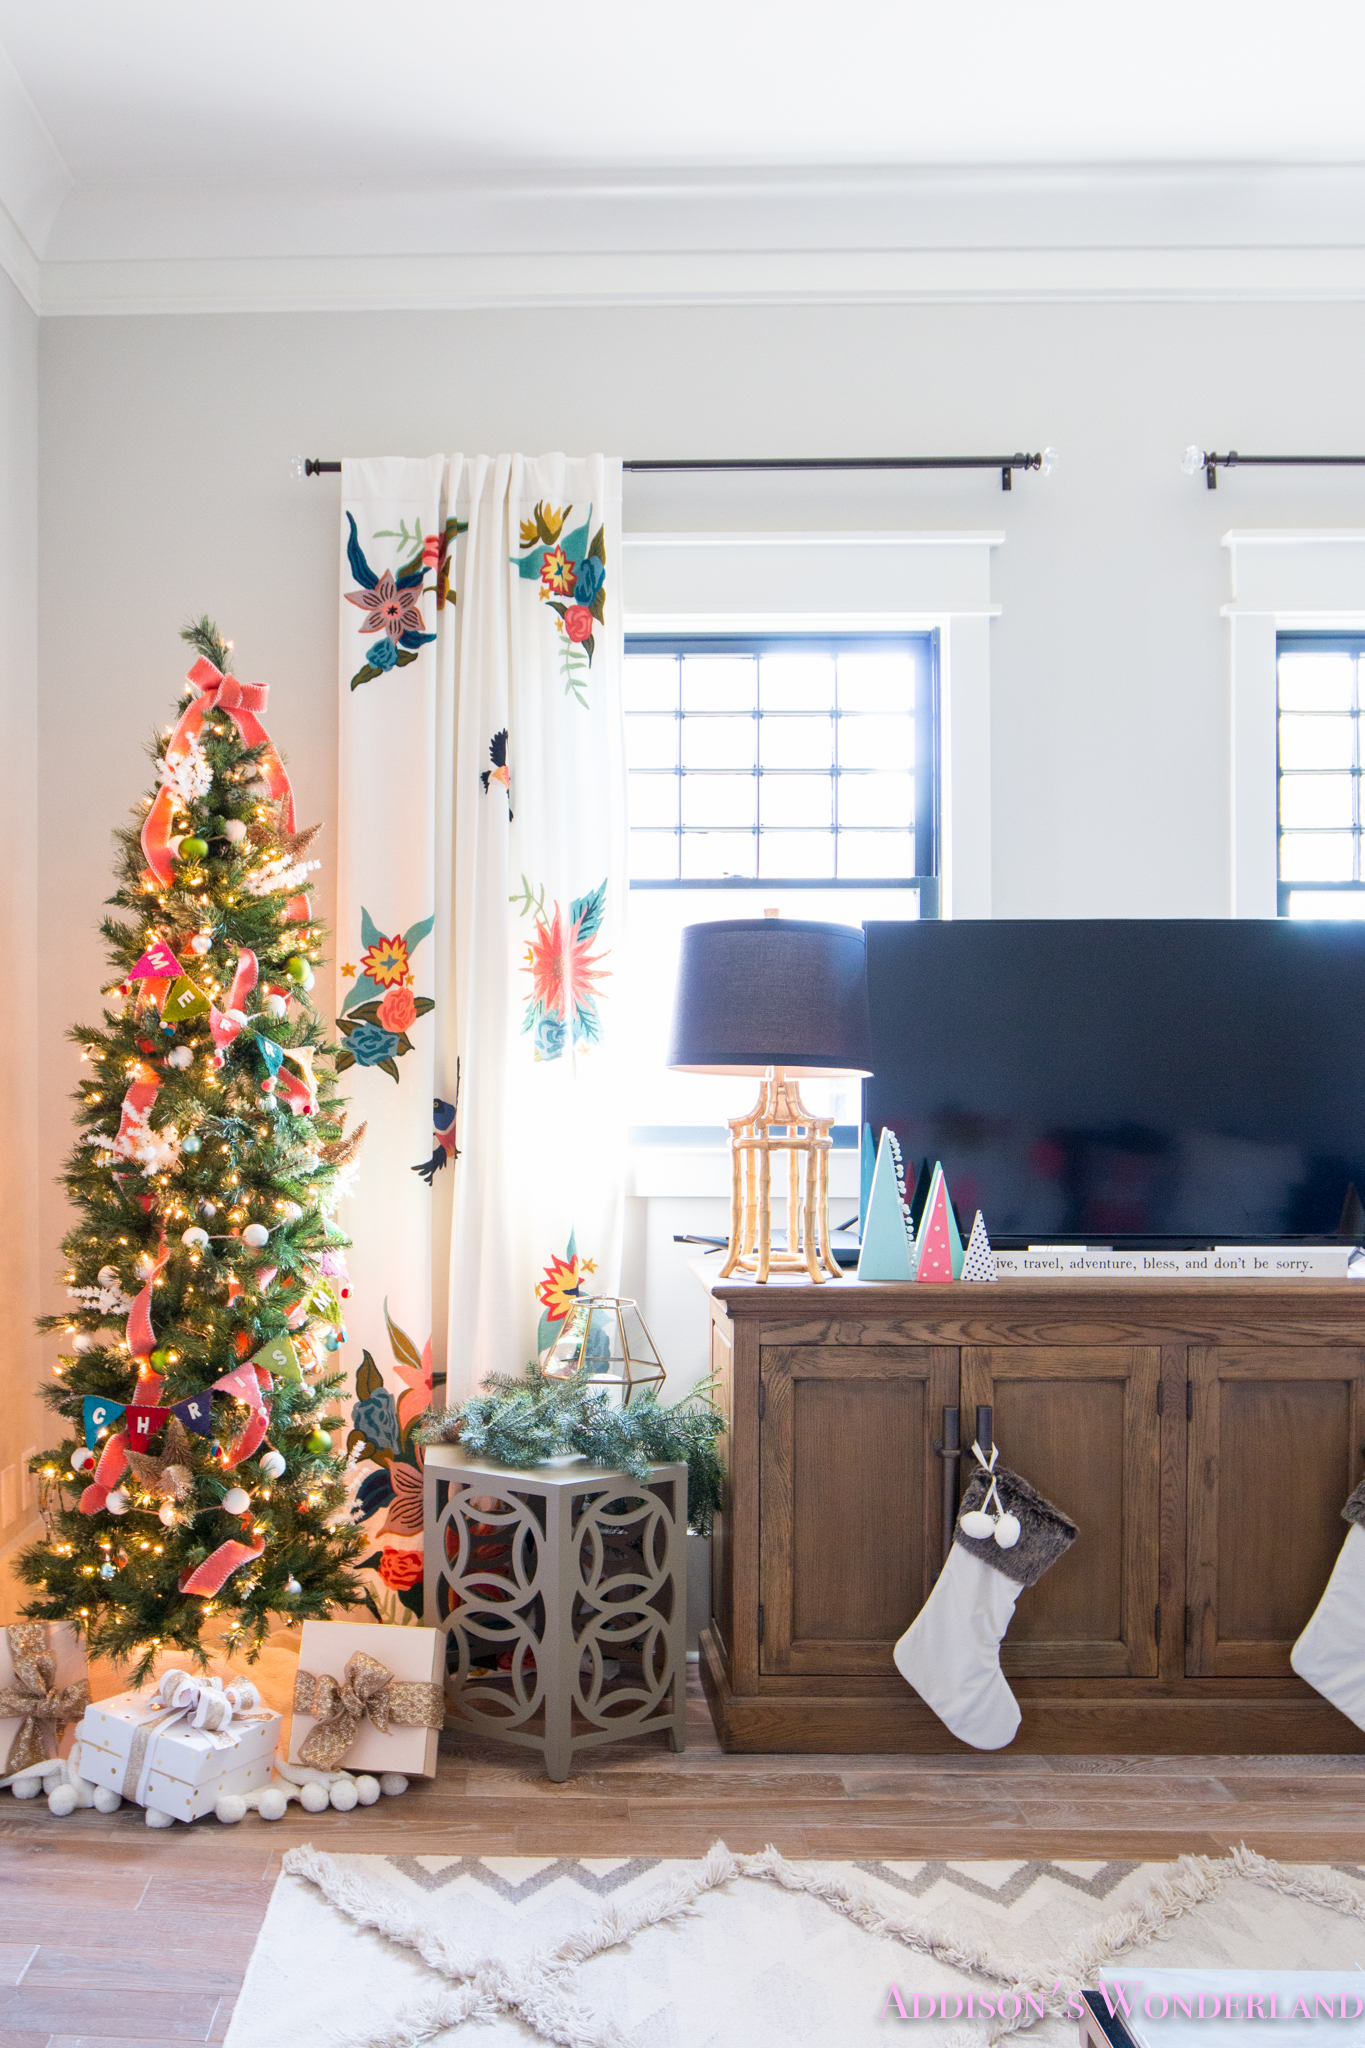 Our Colorful Christmas Holiday Ready Family Room Reveal! - Addison\'s ...